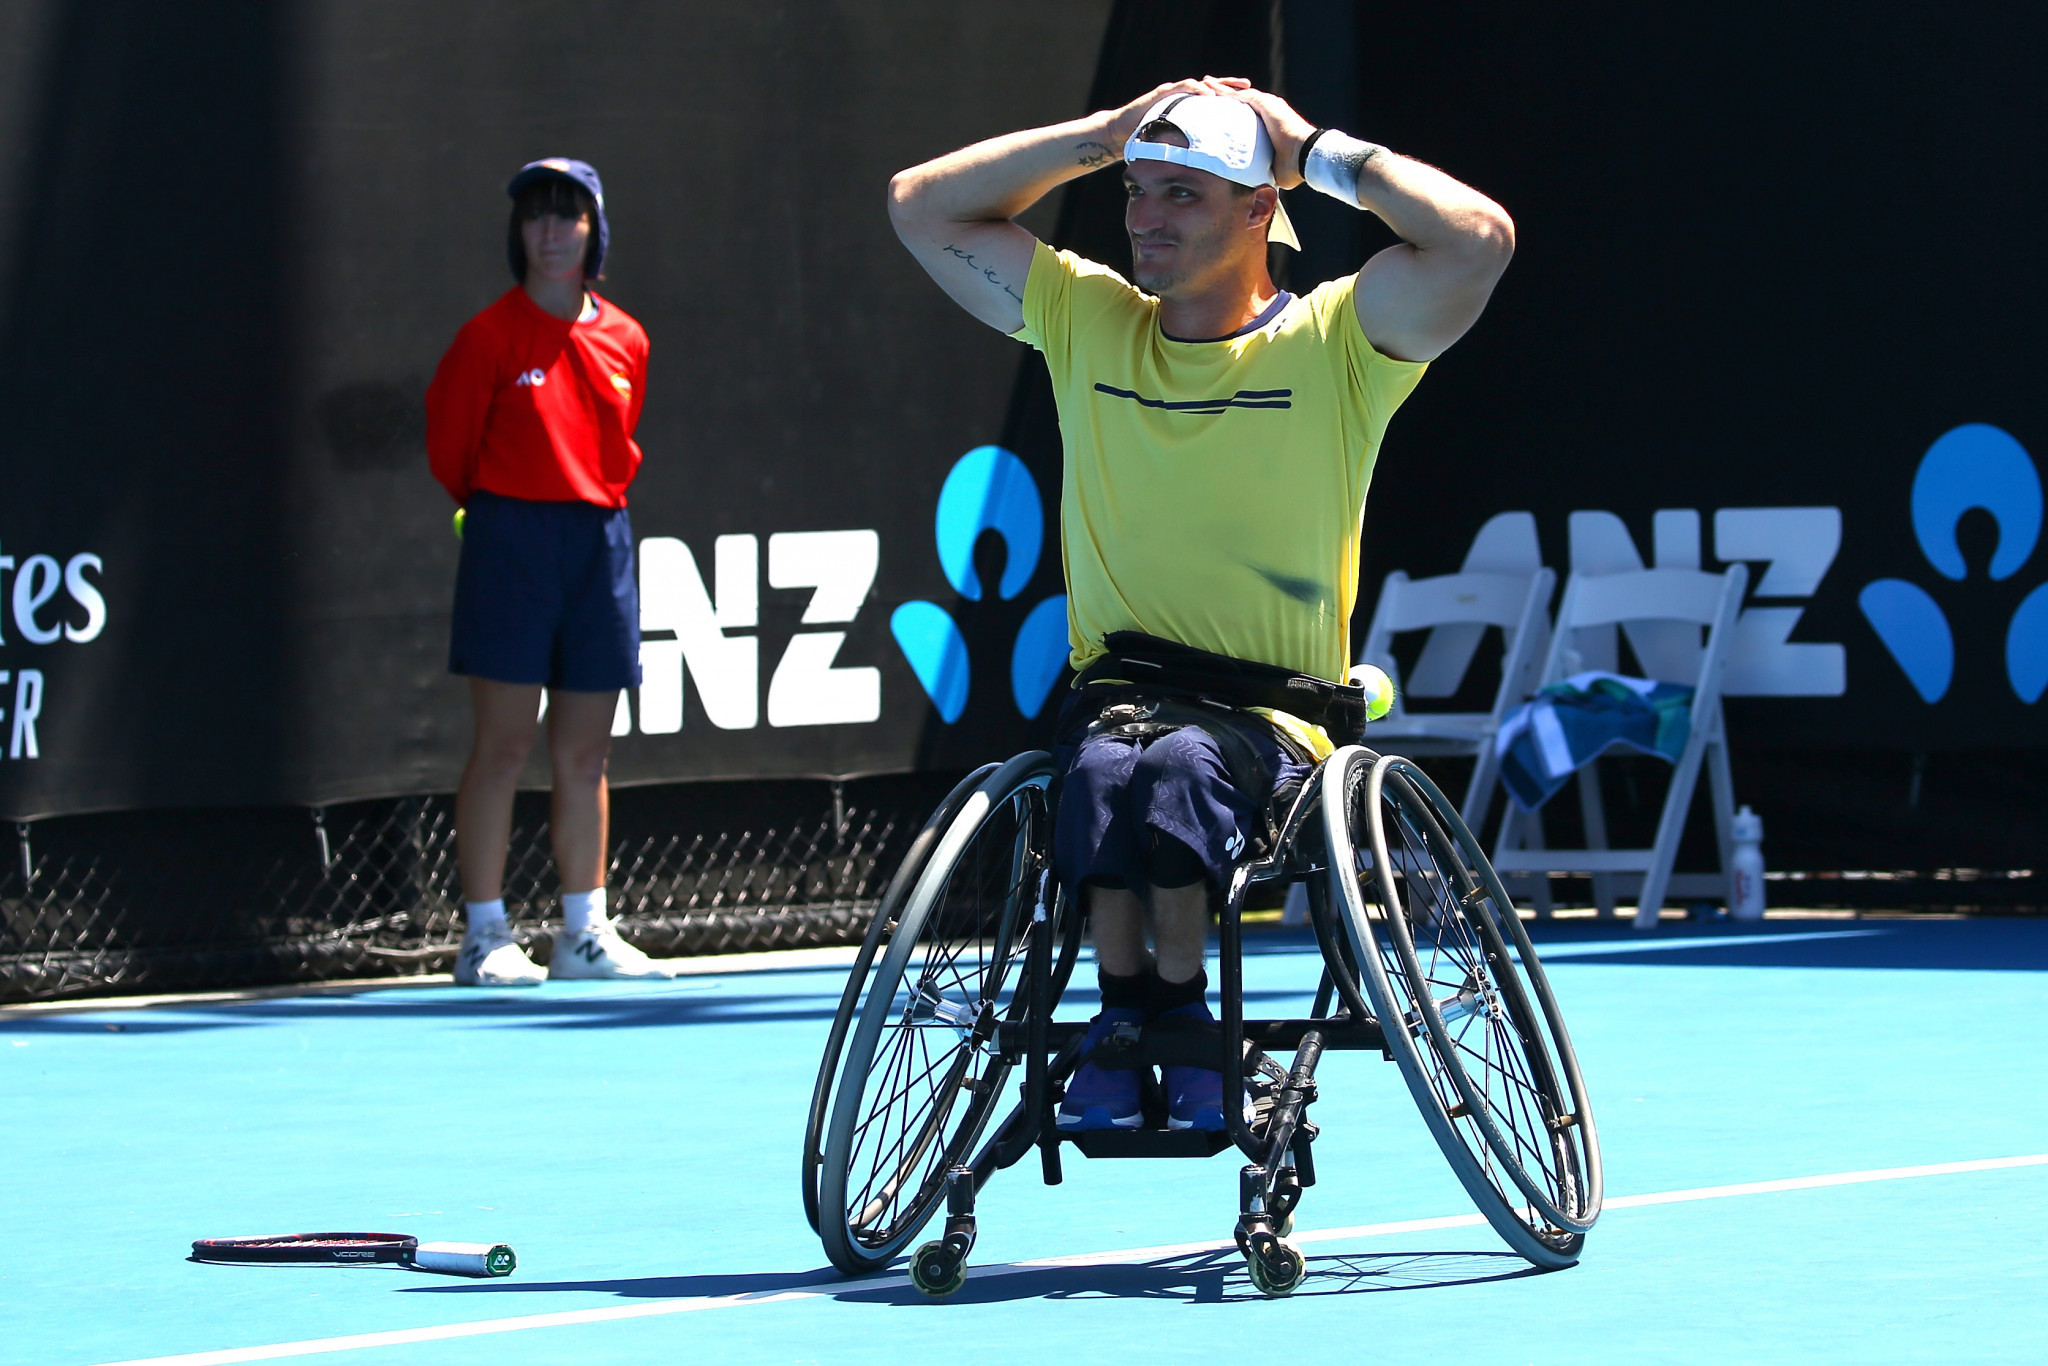 Argentina's wheelchair tennis player Gustavo Fernandez came second in the public vote ©Getty Images